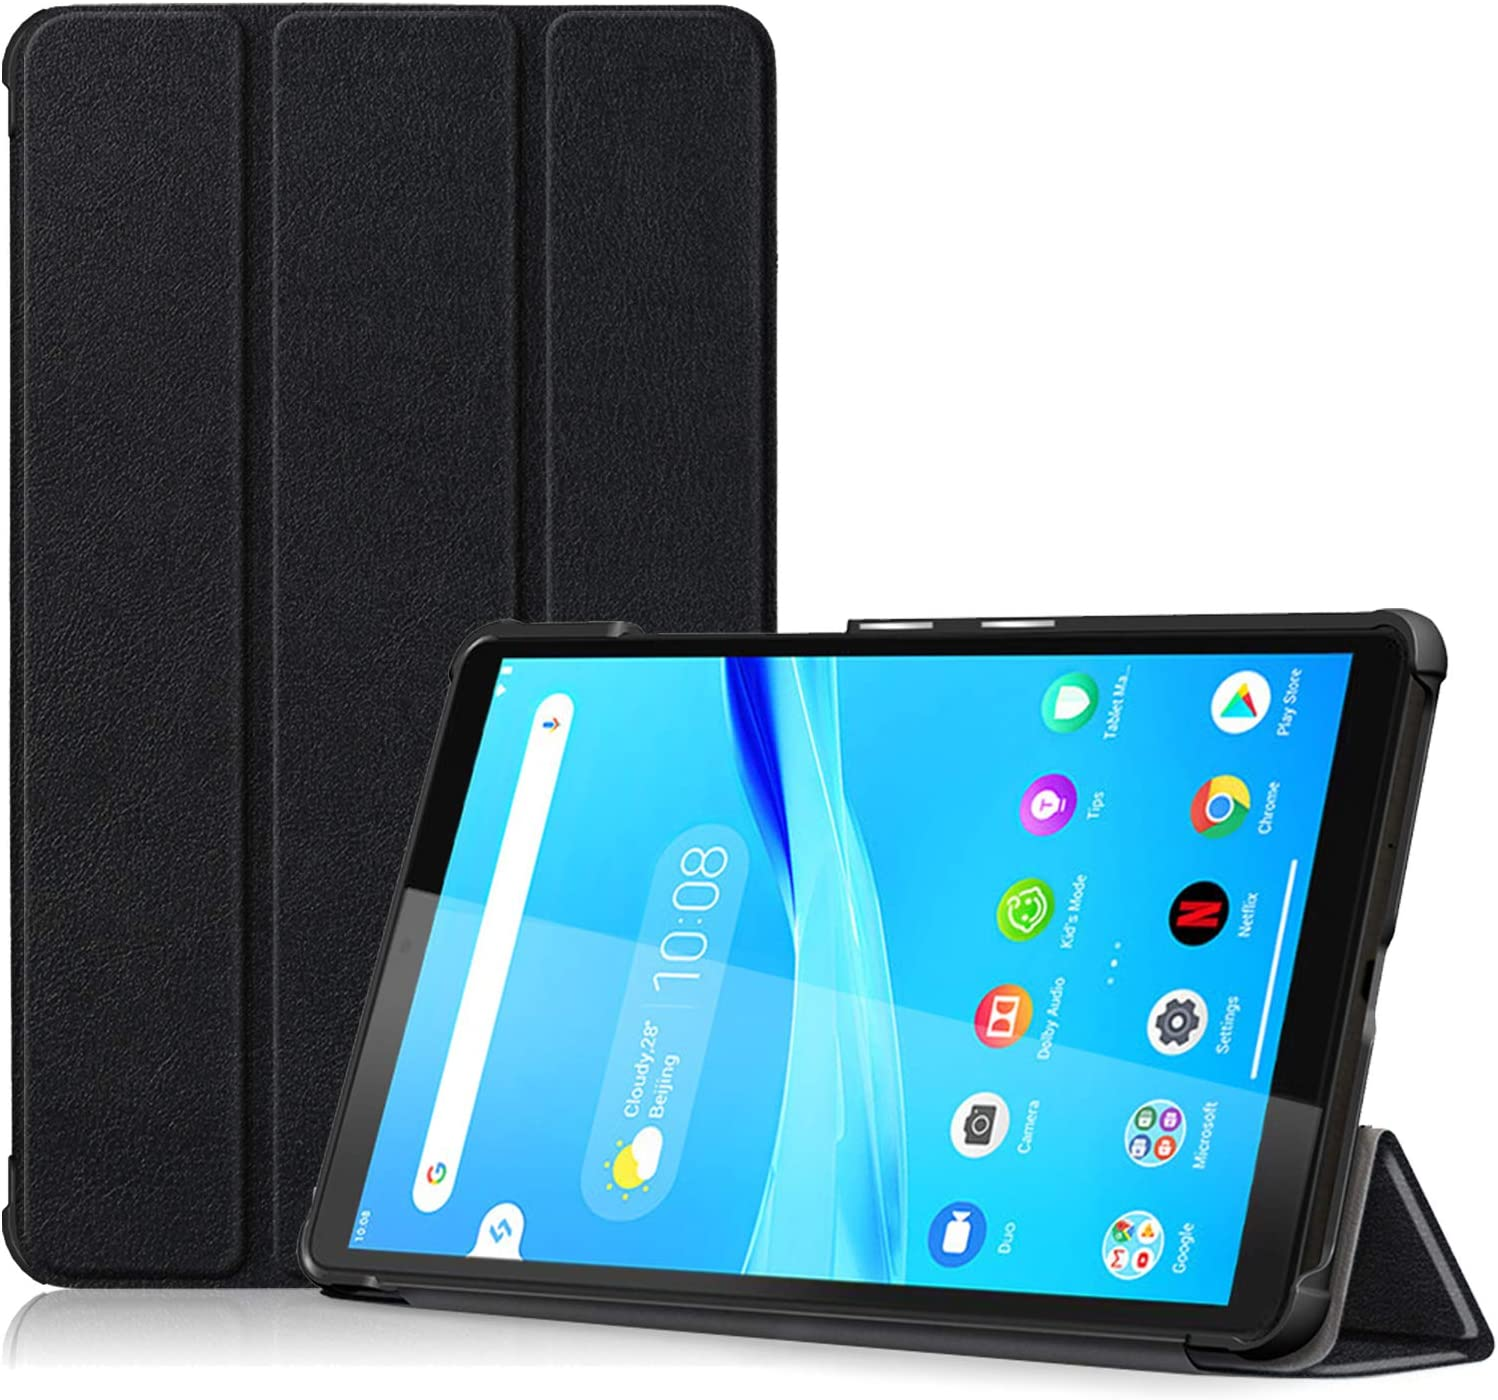 ProCase Lenovo Tab M8 Case 2019 TB-8505F TB-8505X, Slim Lightweight Stand Hard Shell Case Protective Cover for Lenovo Tab M8 HD (2nd Gen) TB-8505F / TB-8505X 2019 8.0 Inch Tablet –Black